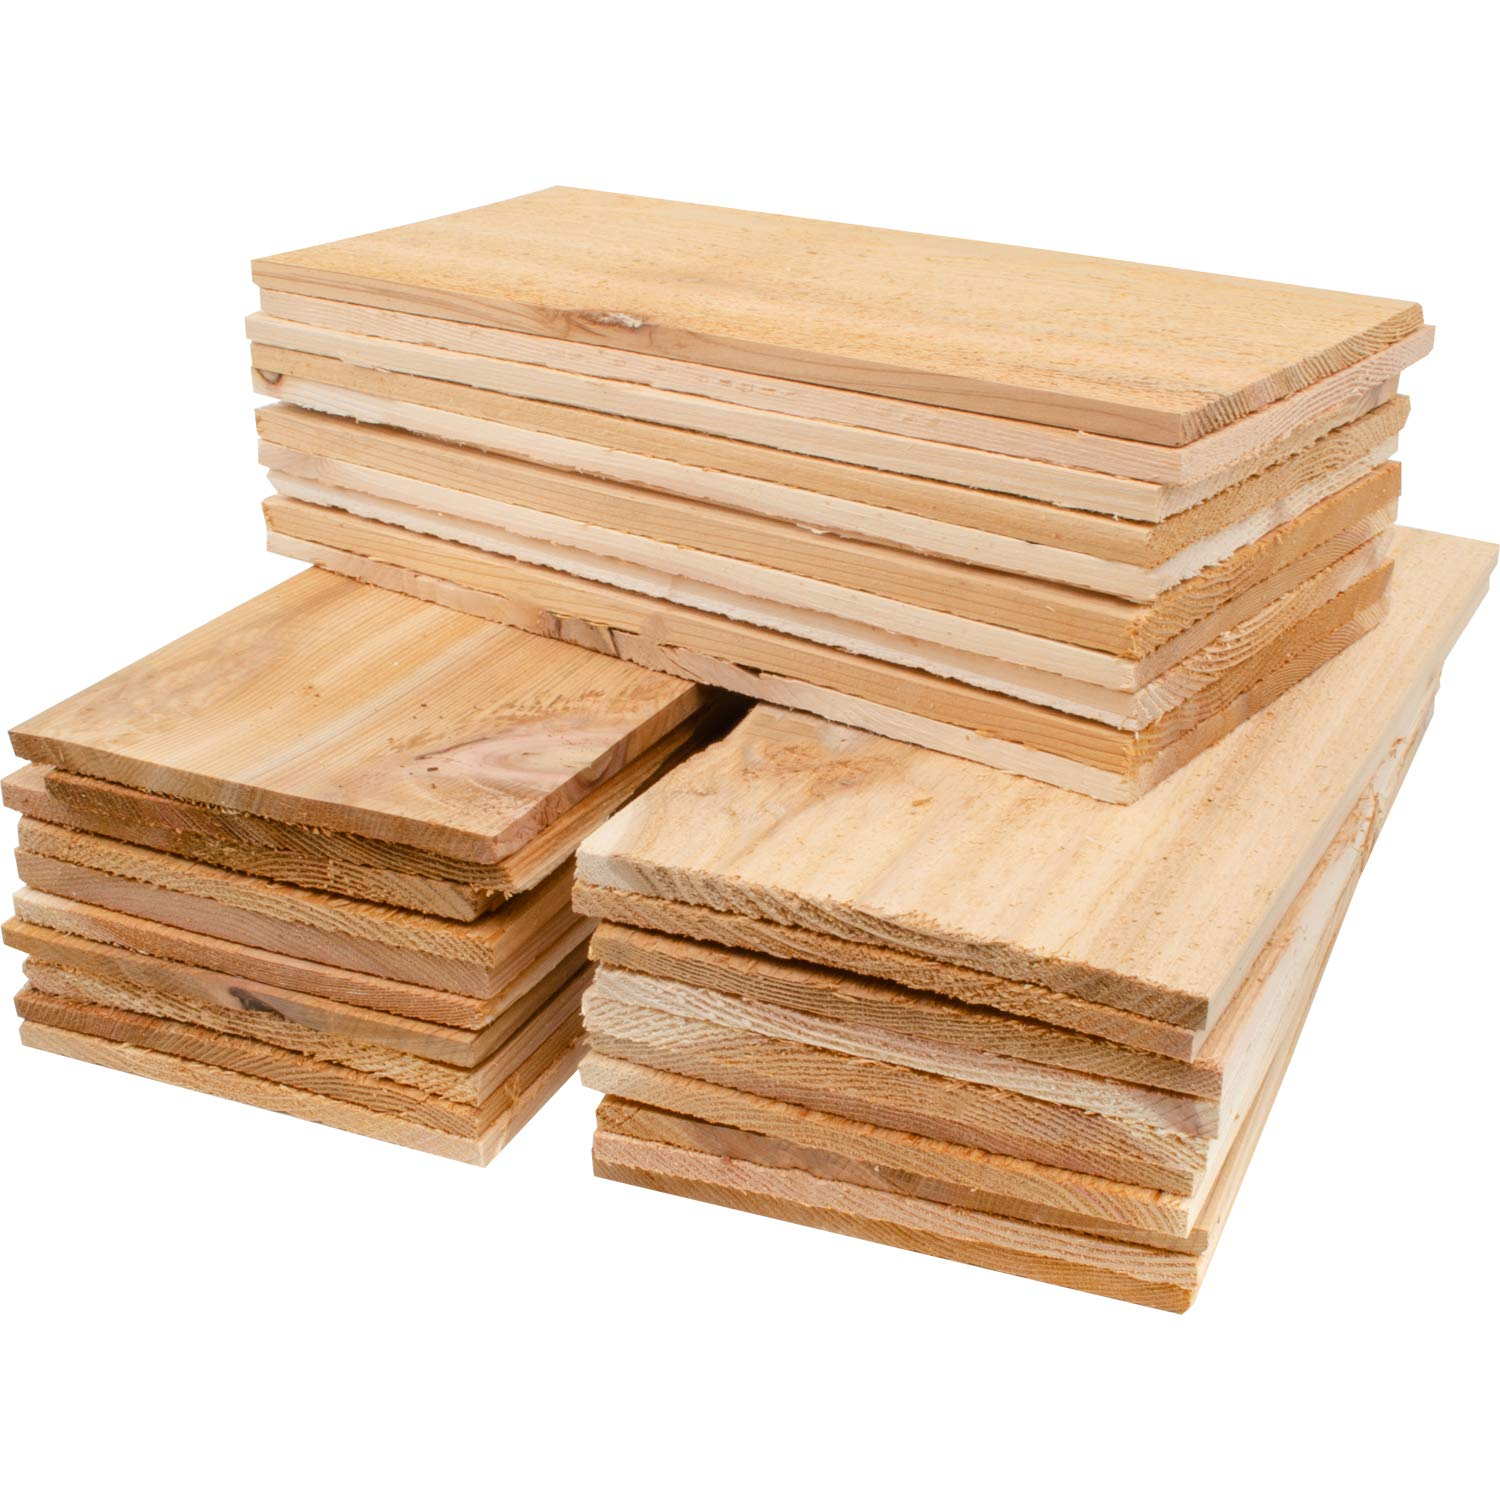 30 Pack Cedar Grilling Planks, Seconds by Grill Gourmet